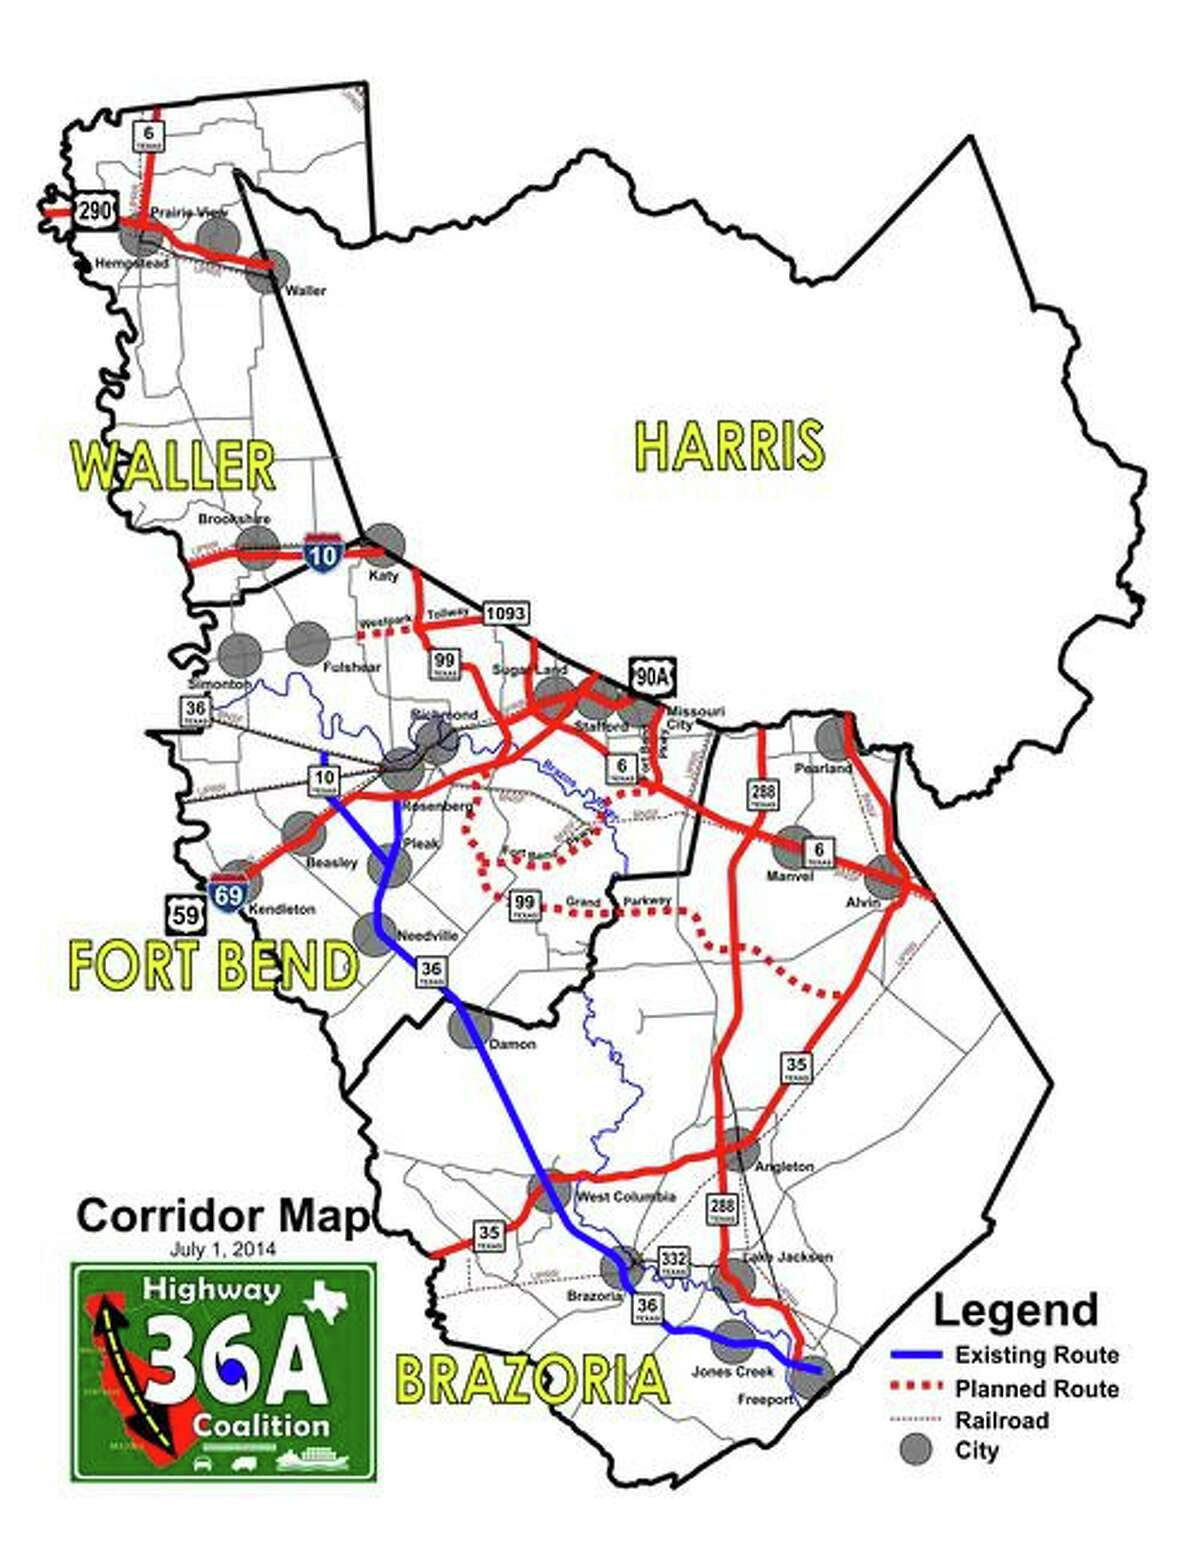 This map shows the proposed route for Highway 36.